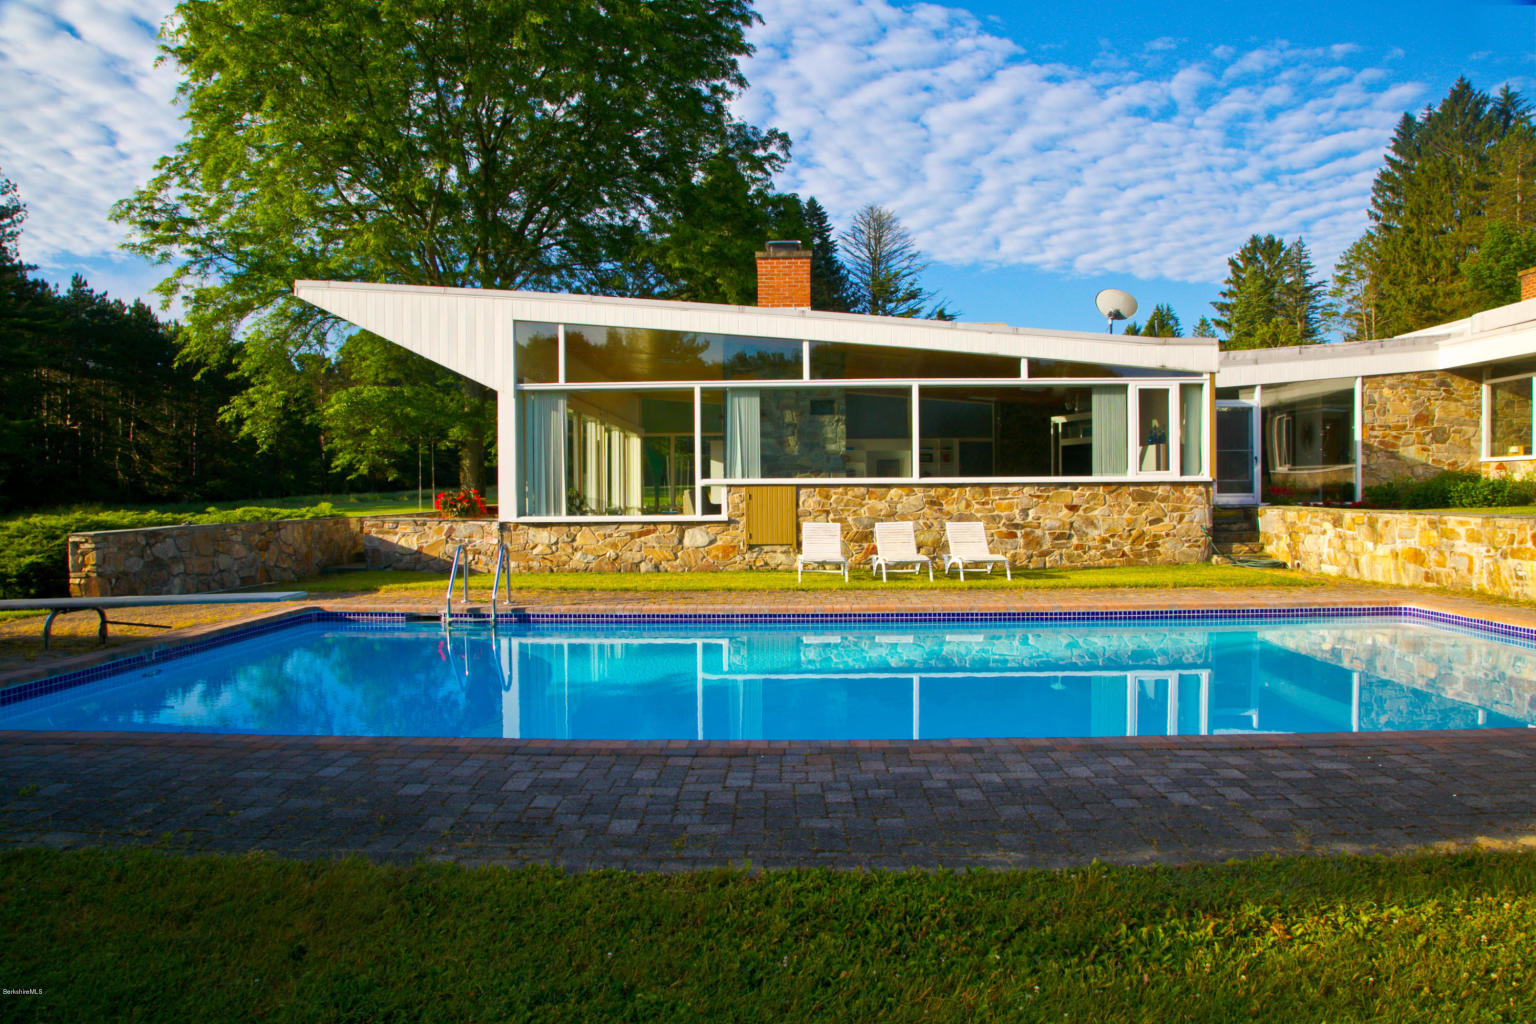 Sold! The Marcel-Breuer-Designed Robinson House